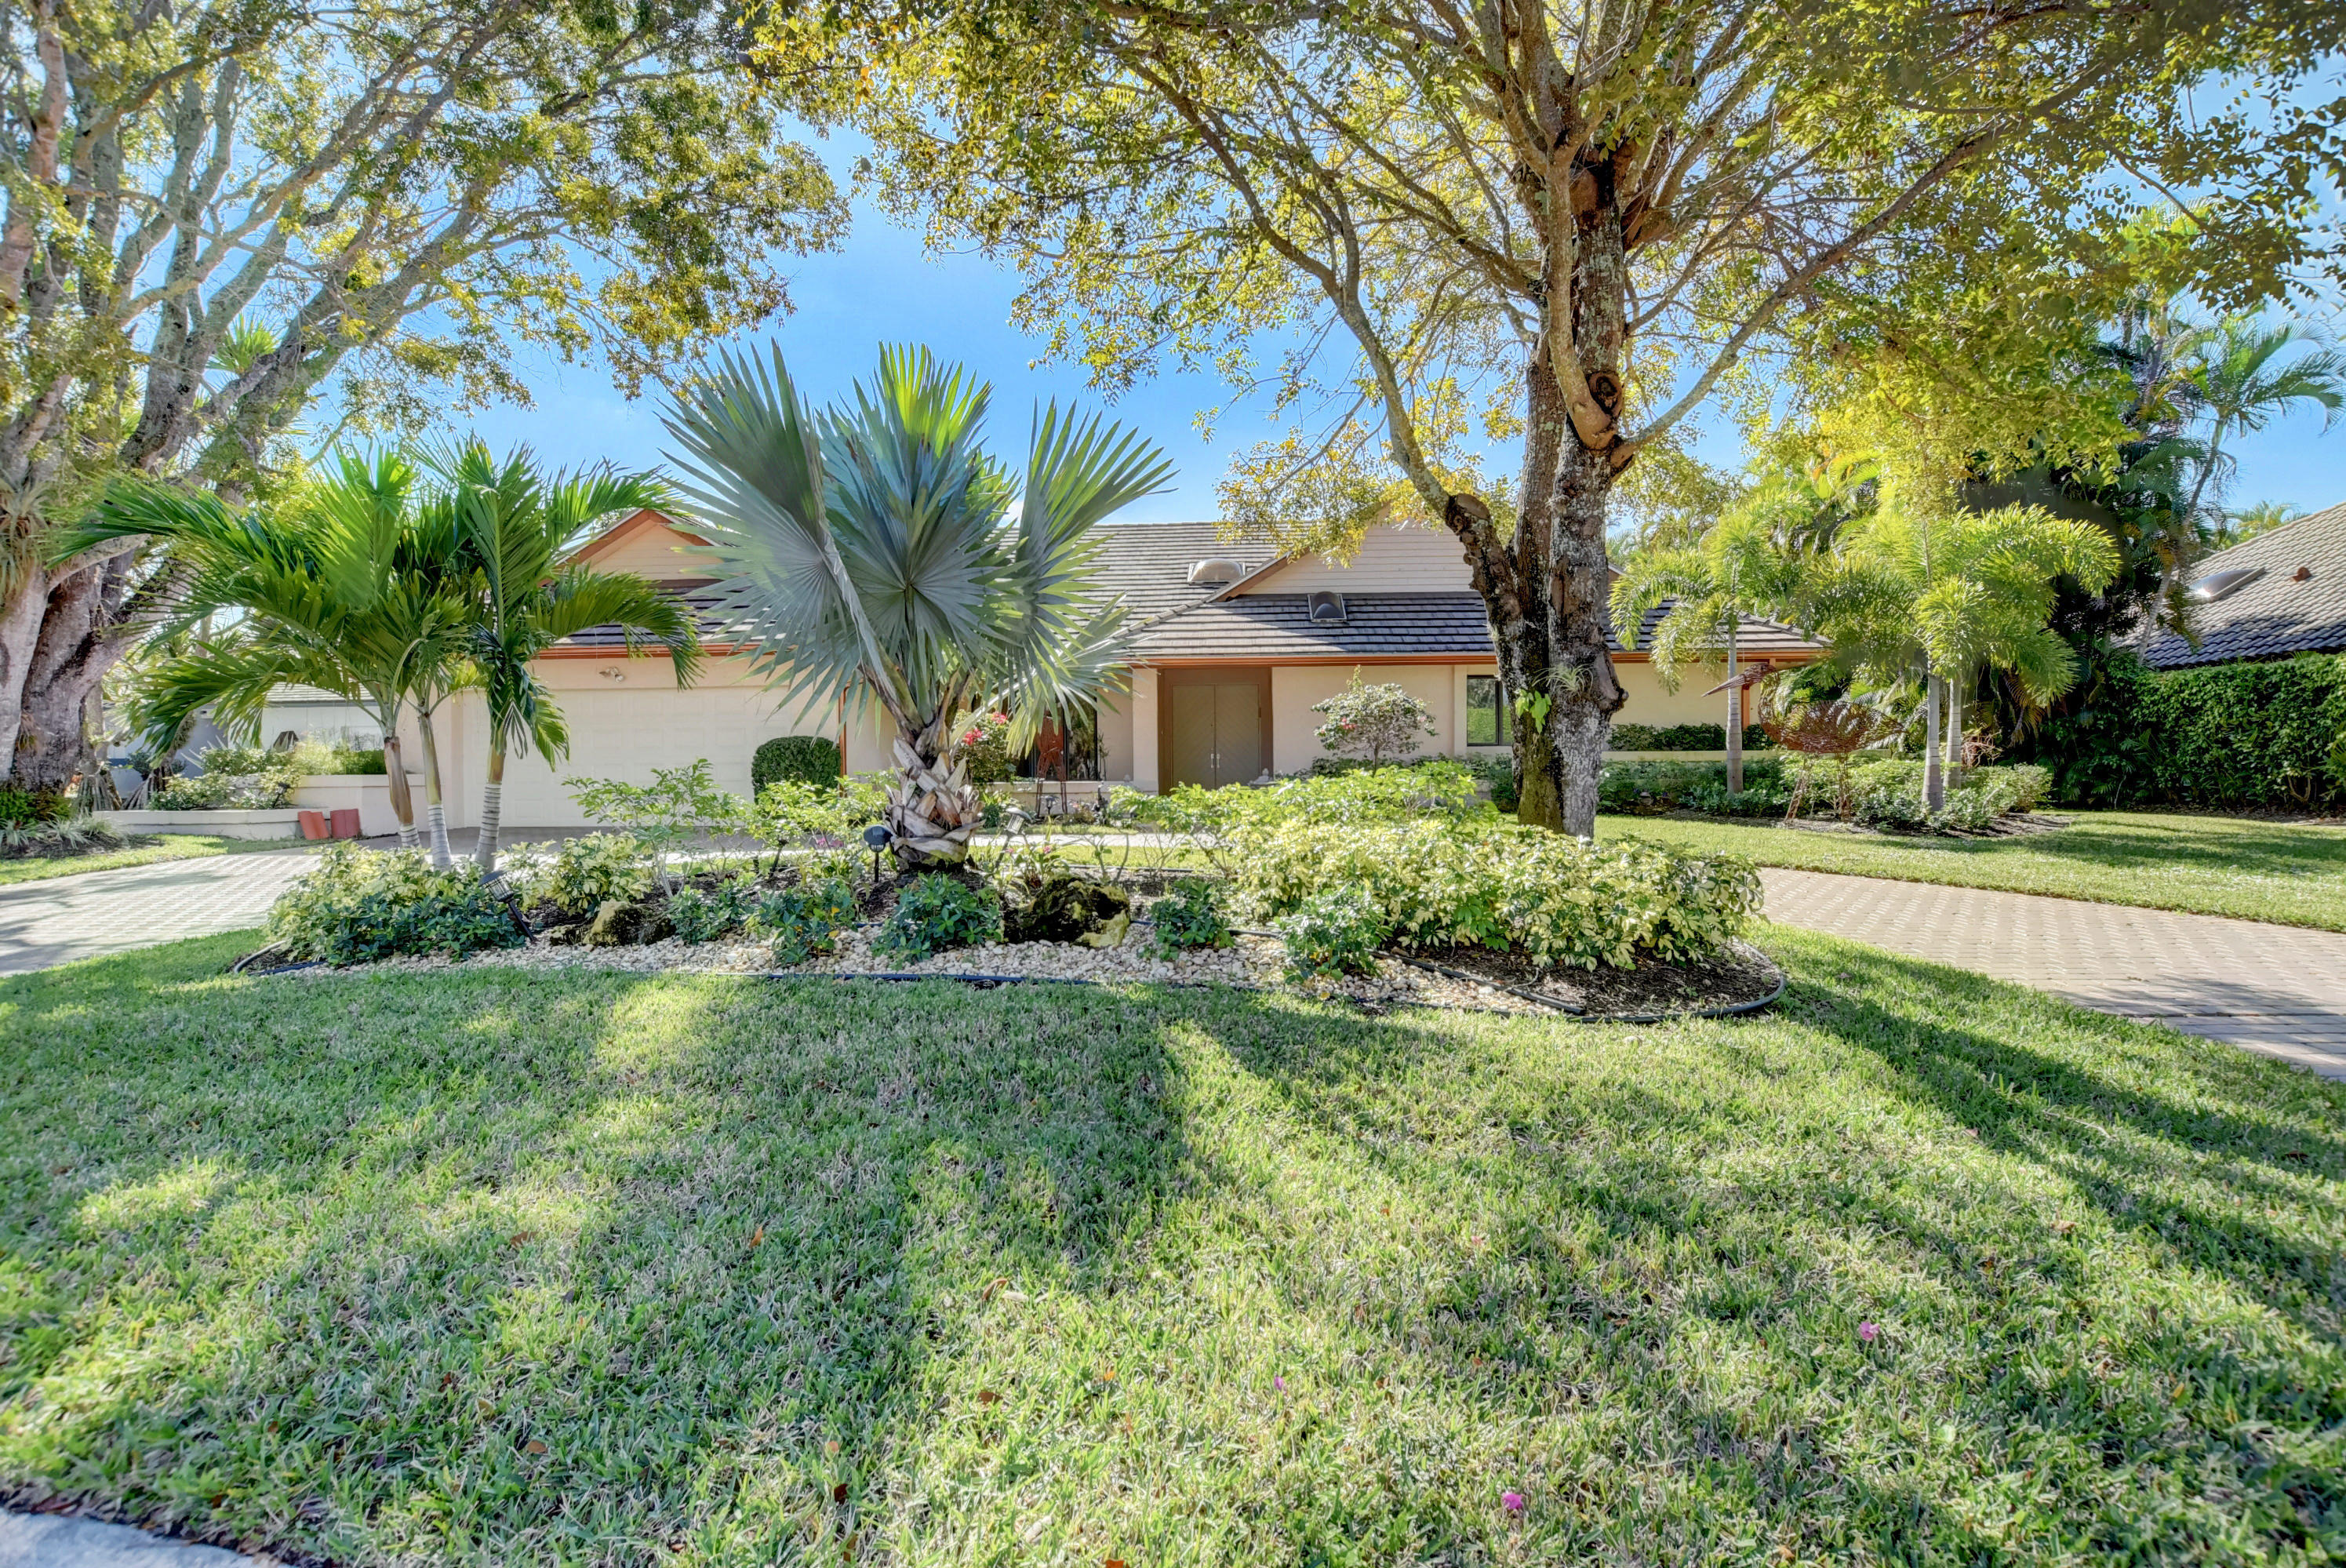 3 bed/5 bath Home in Boca Raton for $1,300,000